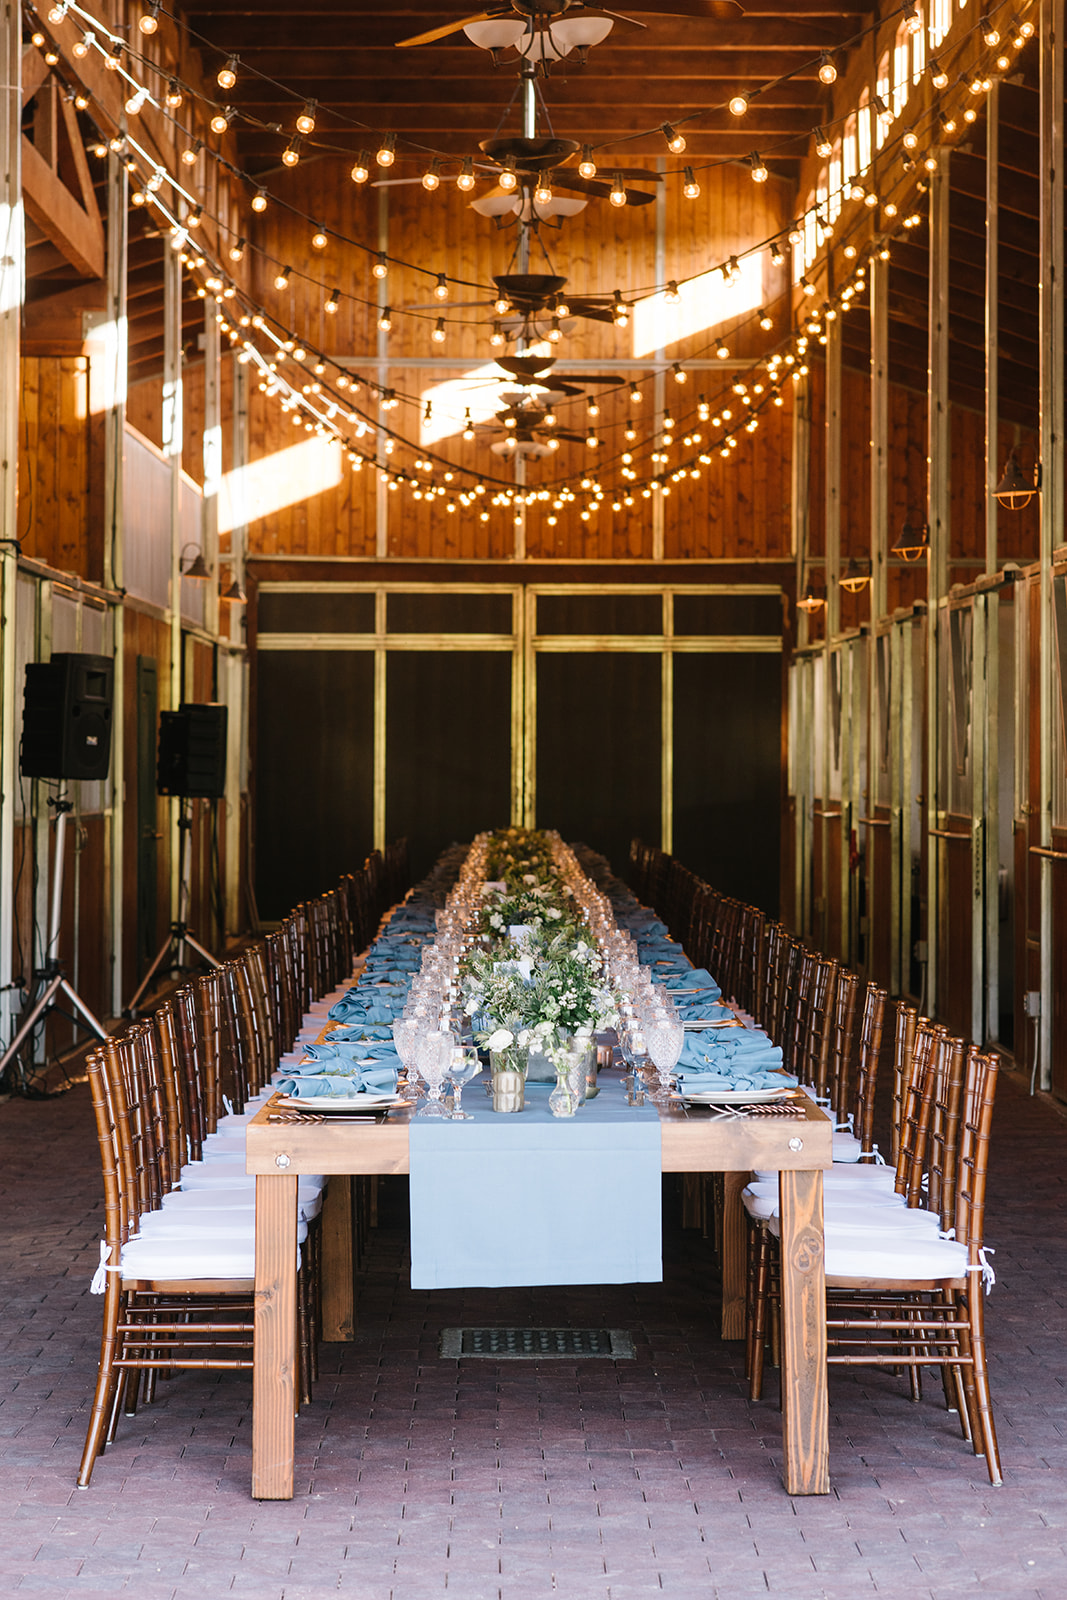 Venue Coordinator vs Event Planner | Reasons To Hire a Wedding Planner | Michelle Leo Events | Utah Event Planner and Designer